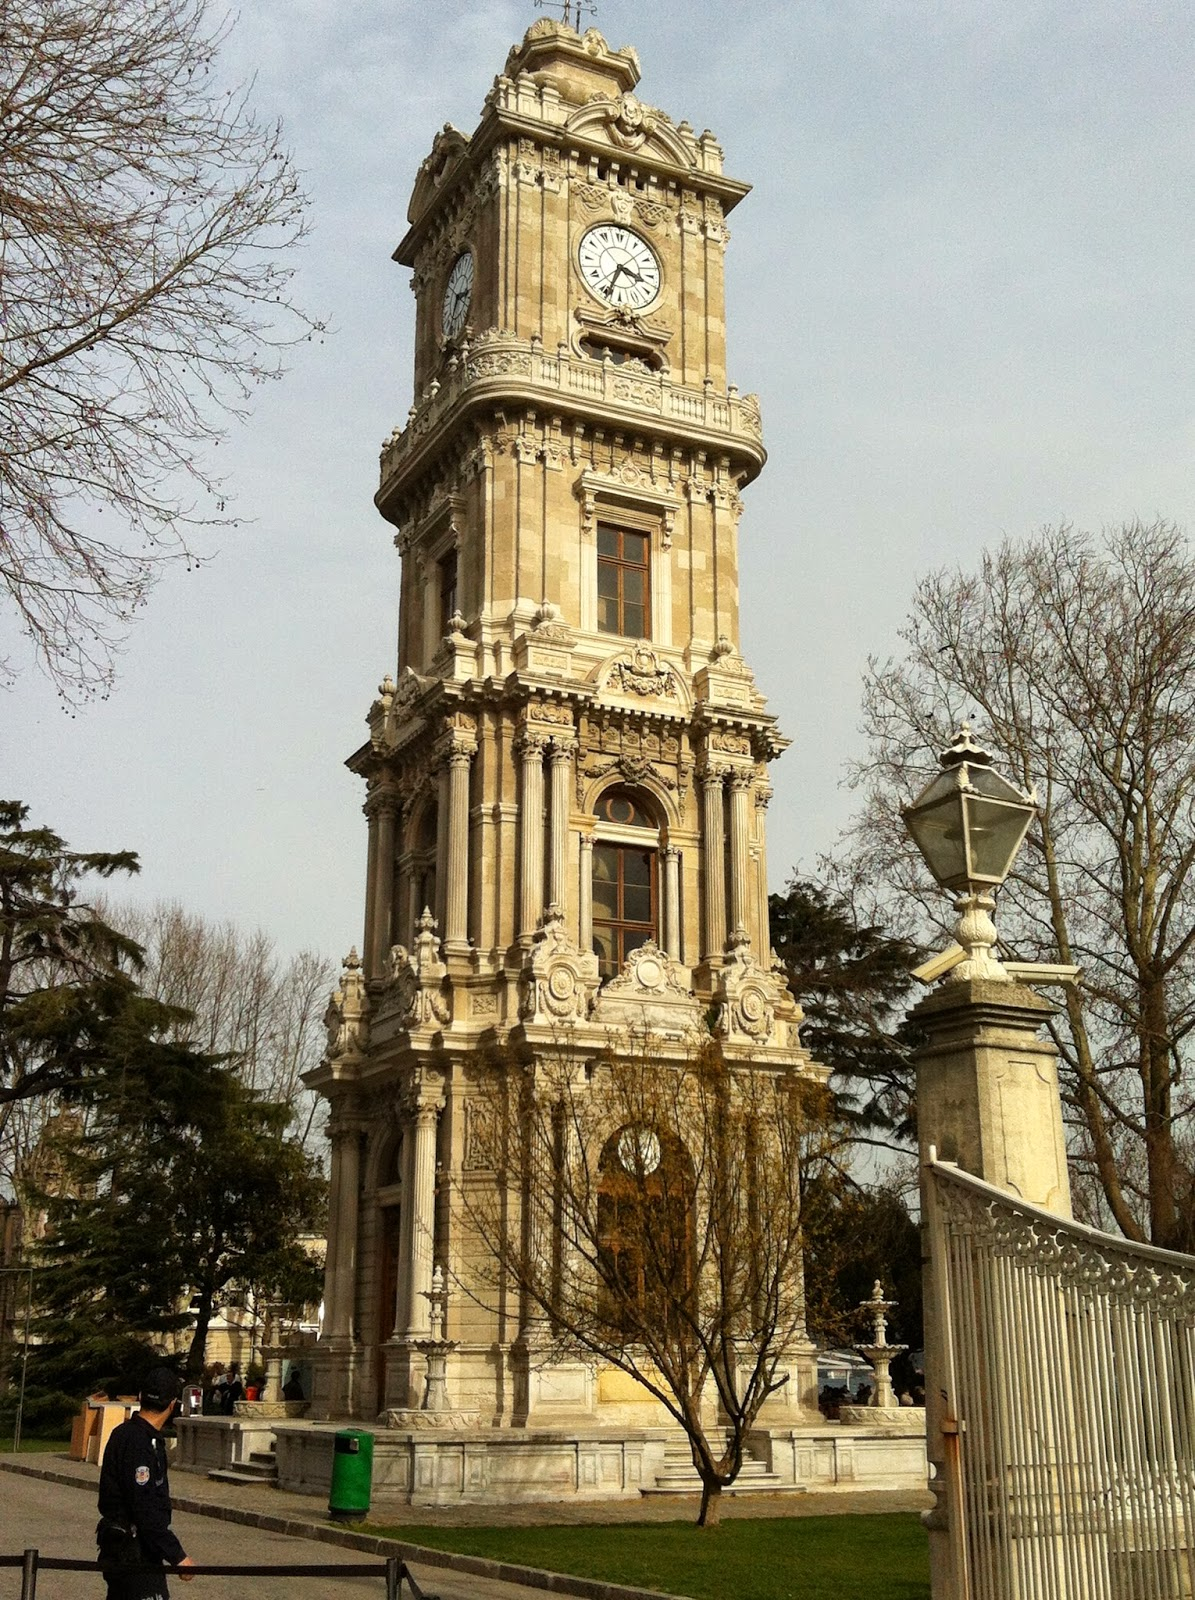 Tracing istanbul another important landmark dolmabahce clock tower stands in between dolmabahce palace and bezmi alem valide sultan mosque ordered to be built by sultan thecheapjerseys Gallery